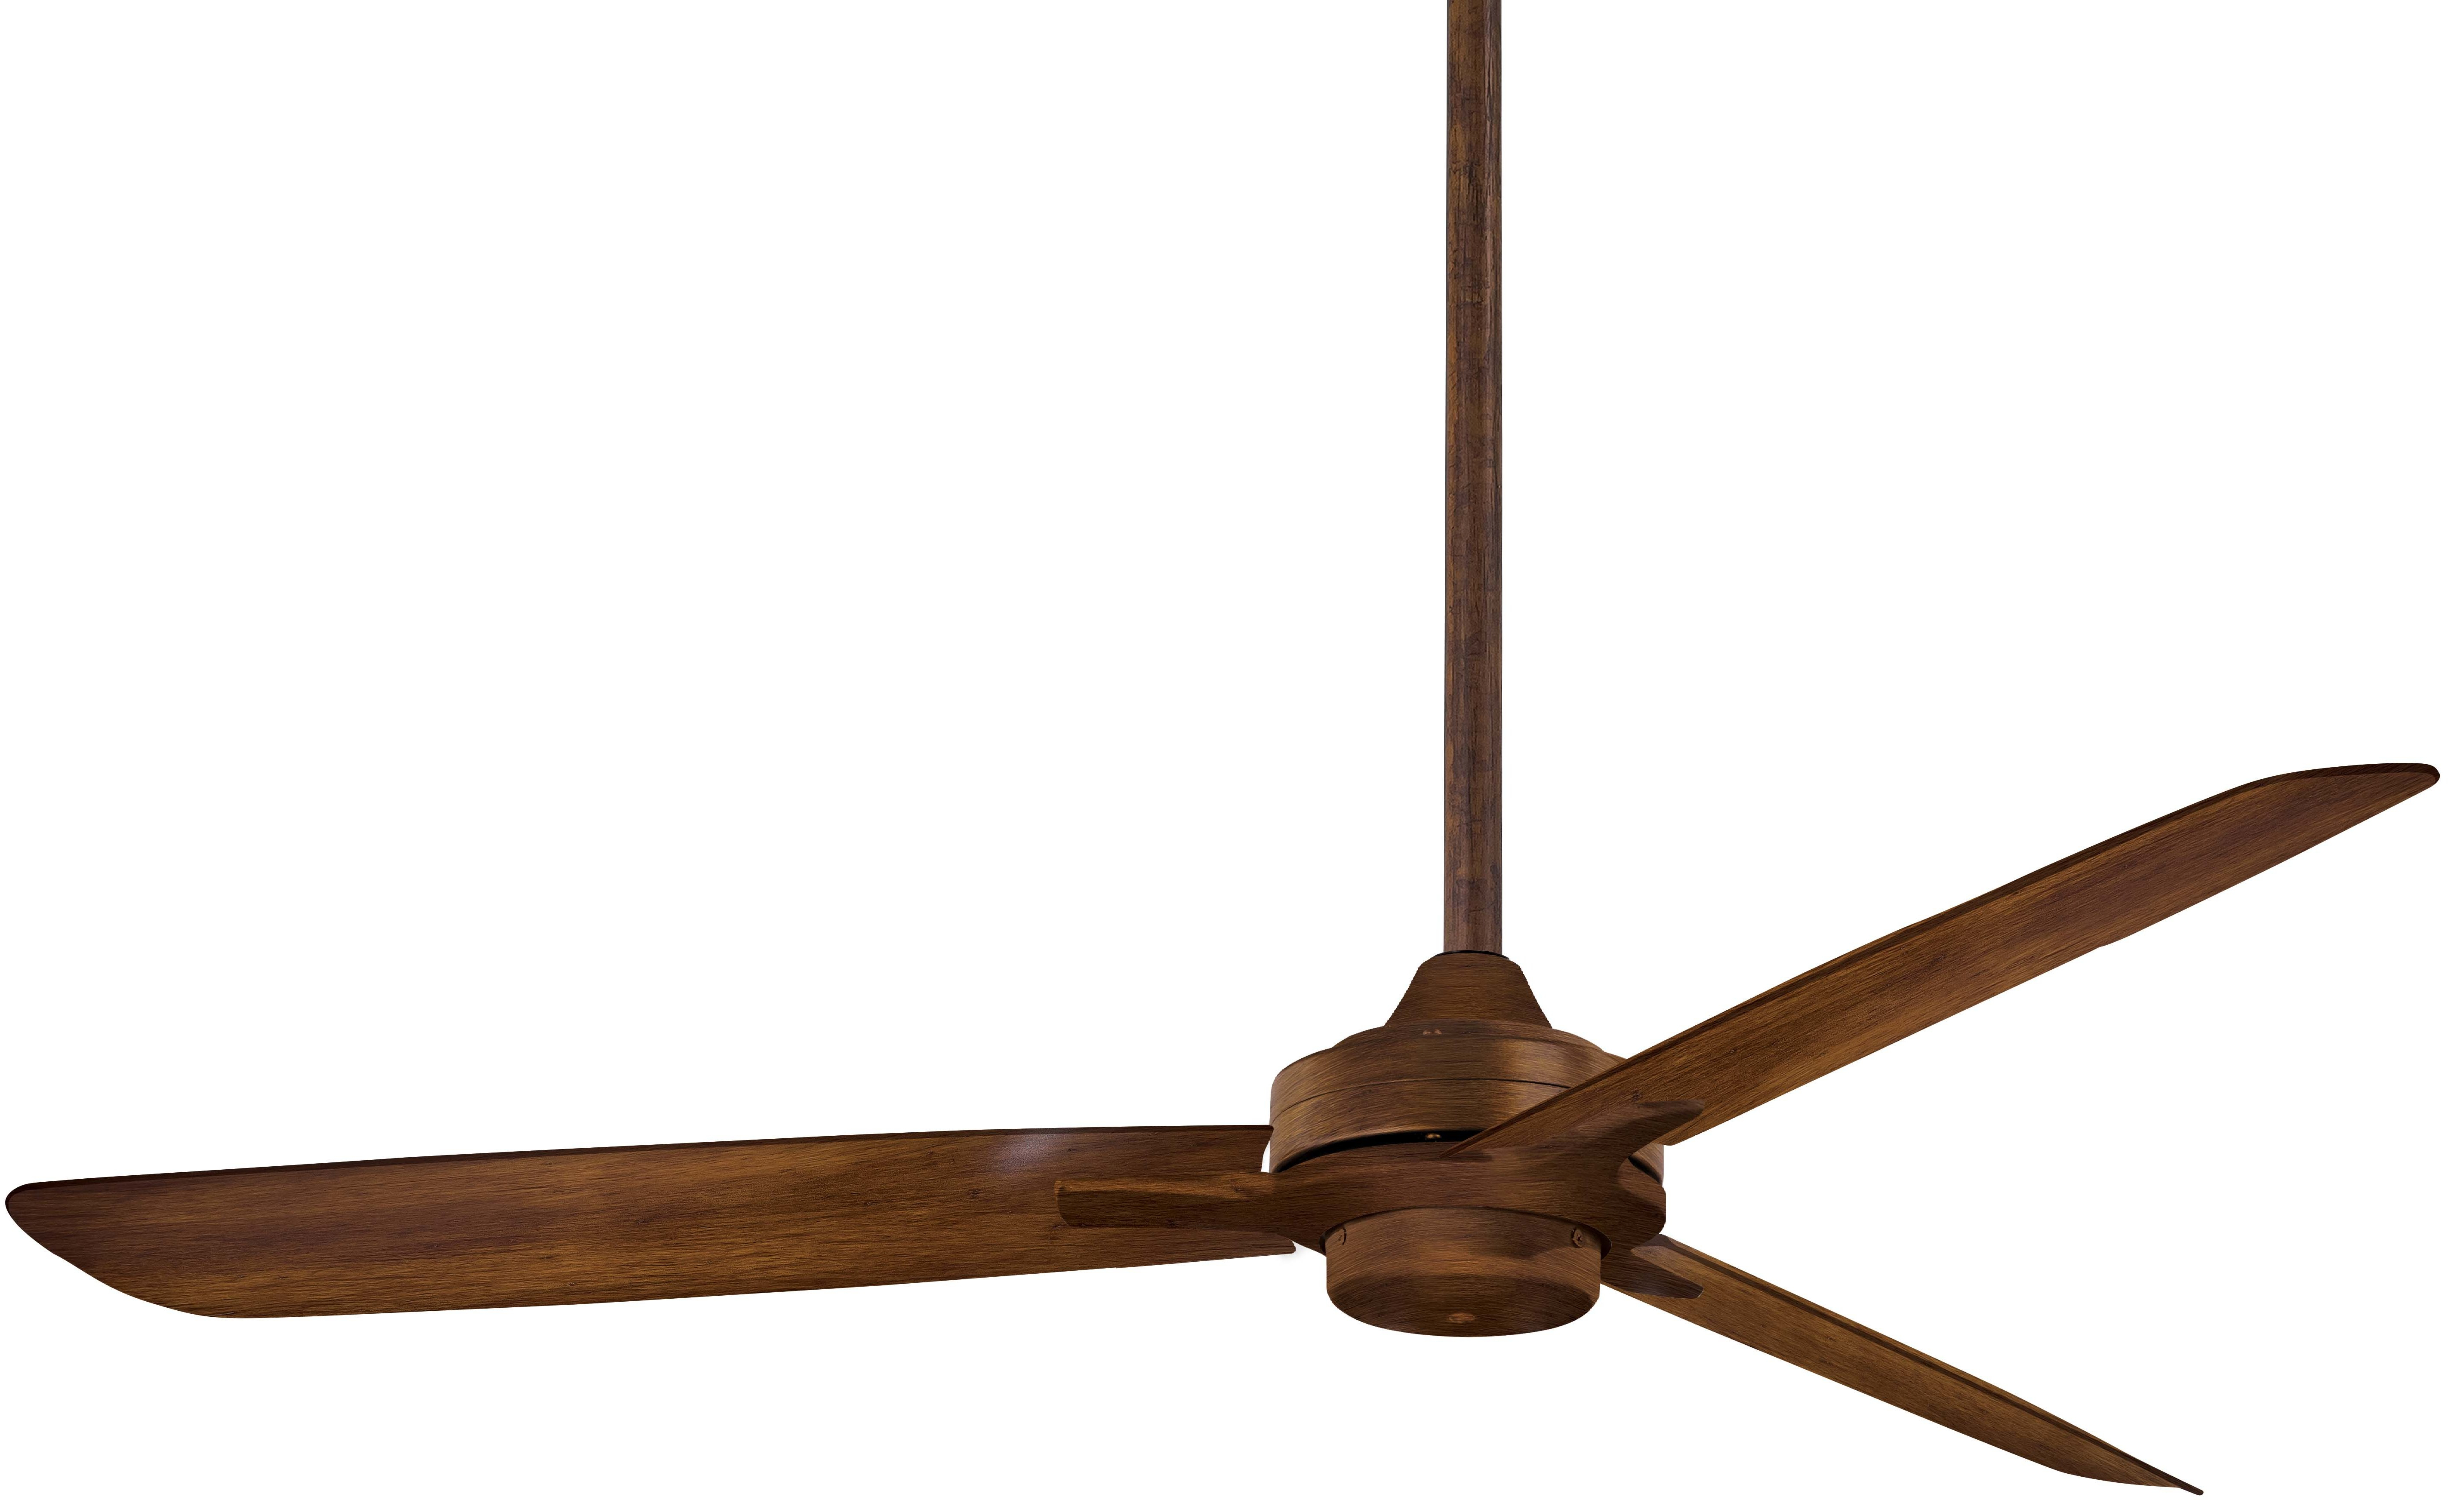 "Minka Aire 52"" Rudolph 3 Blade Ceiling Fan Pertaining To Widely Used Truesdale 3 Blades Ceiling Fans (View 5 of 20)"